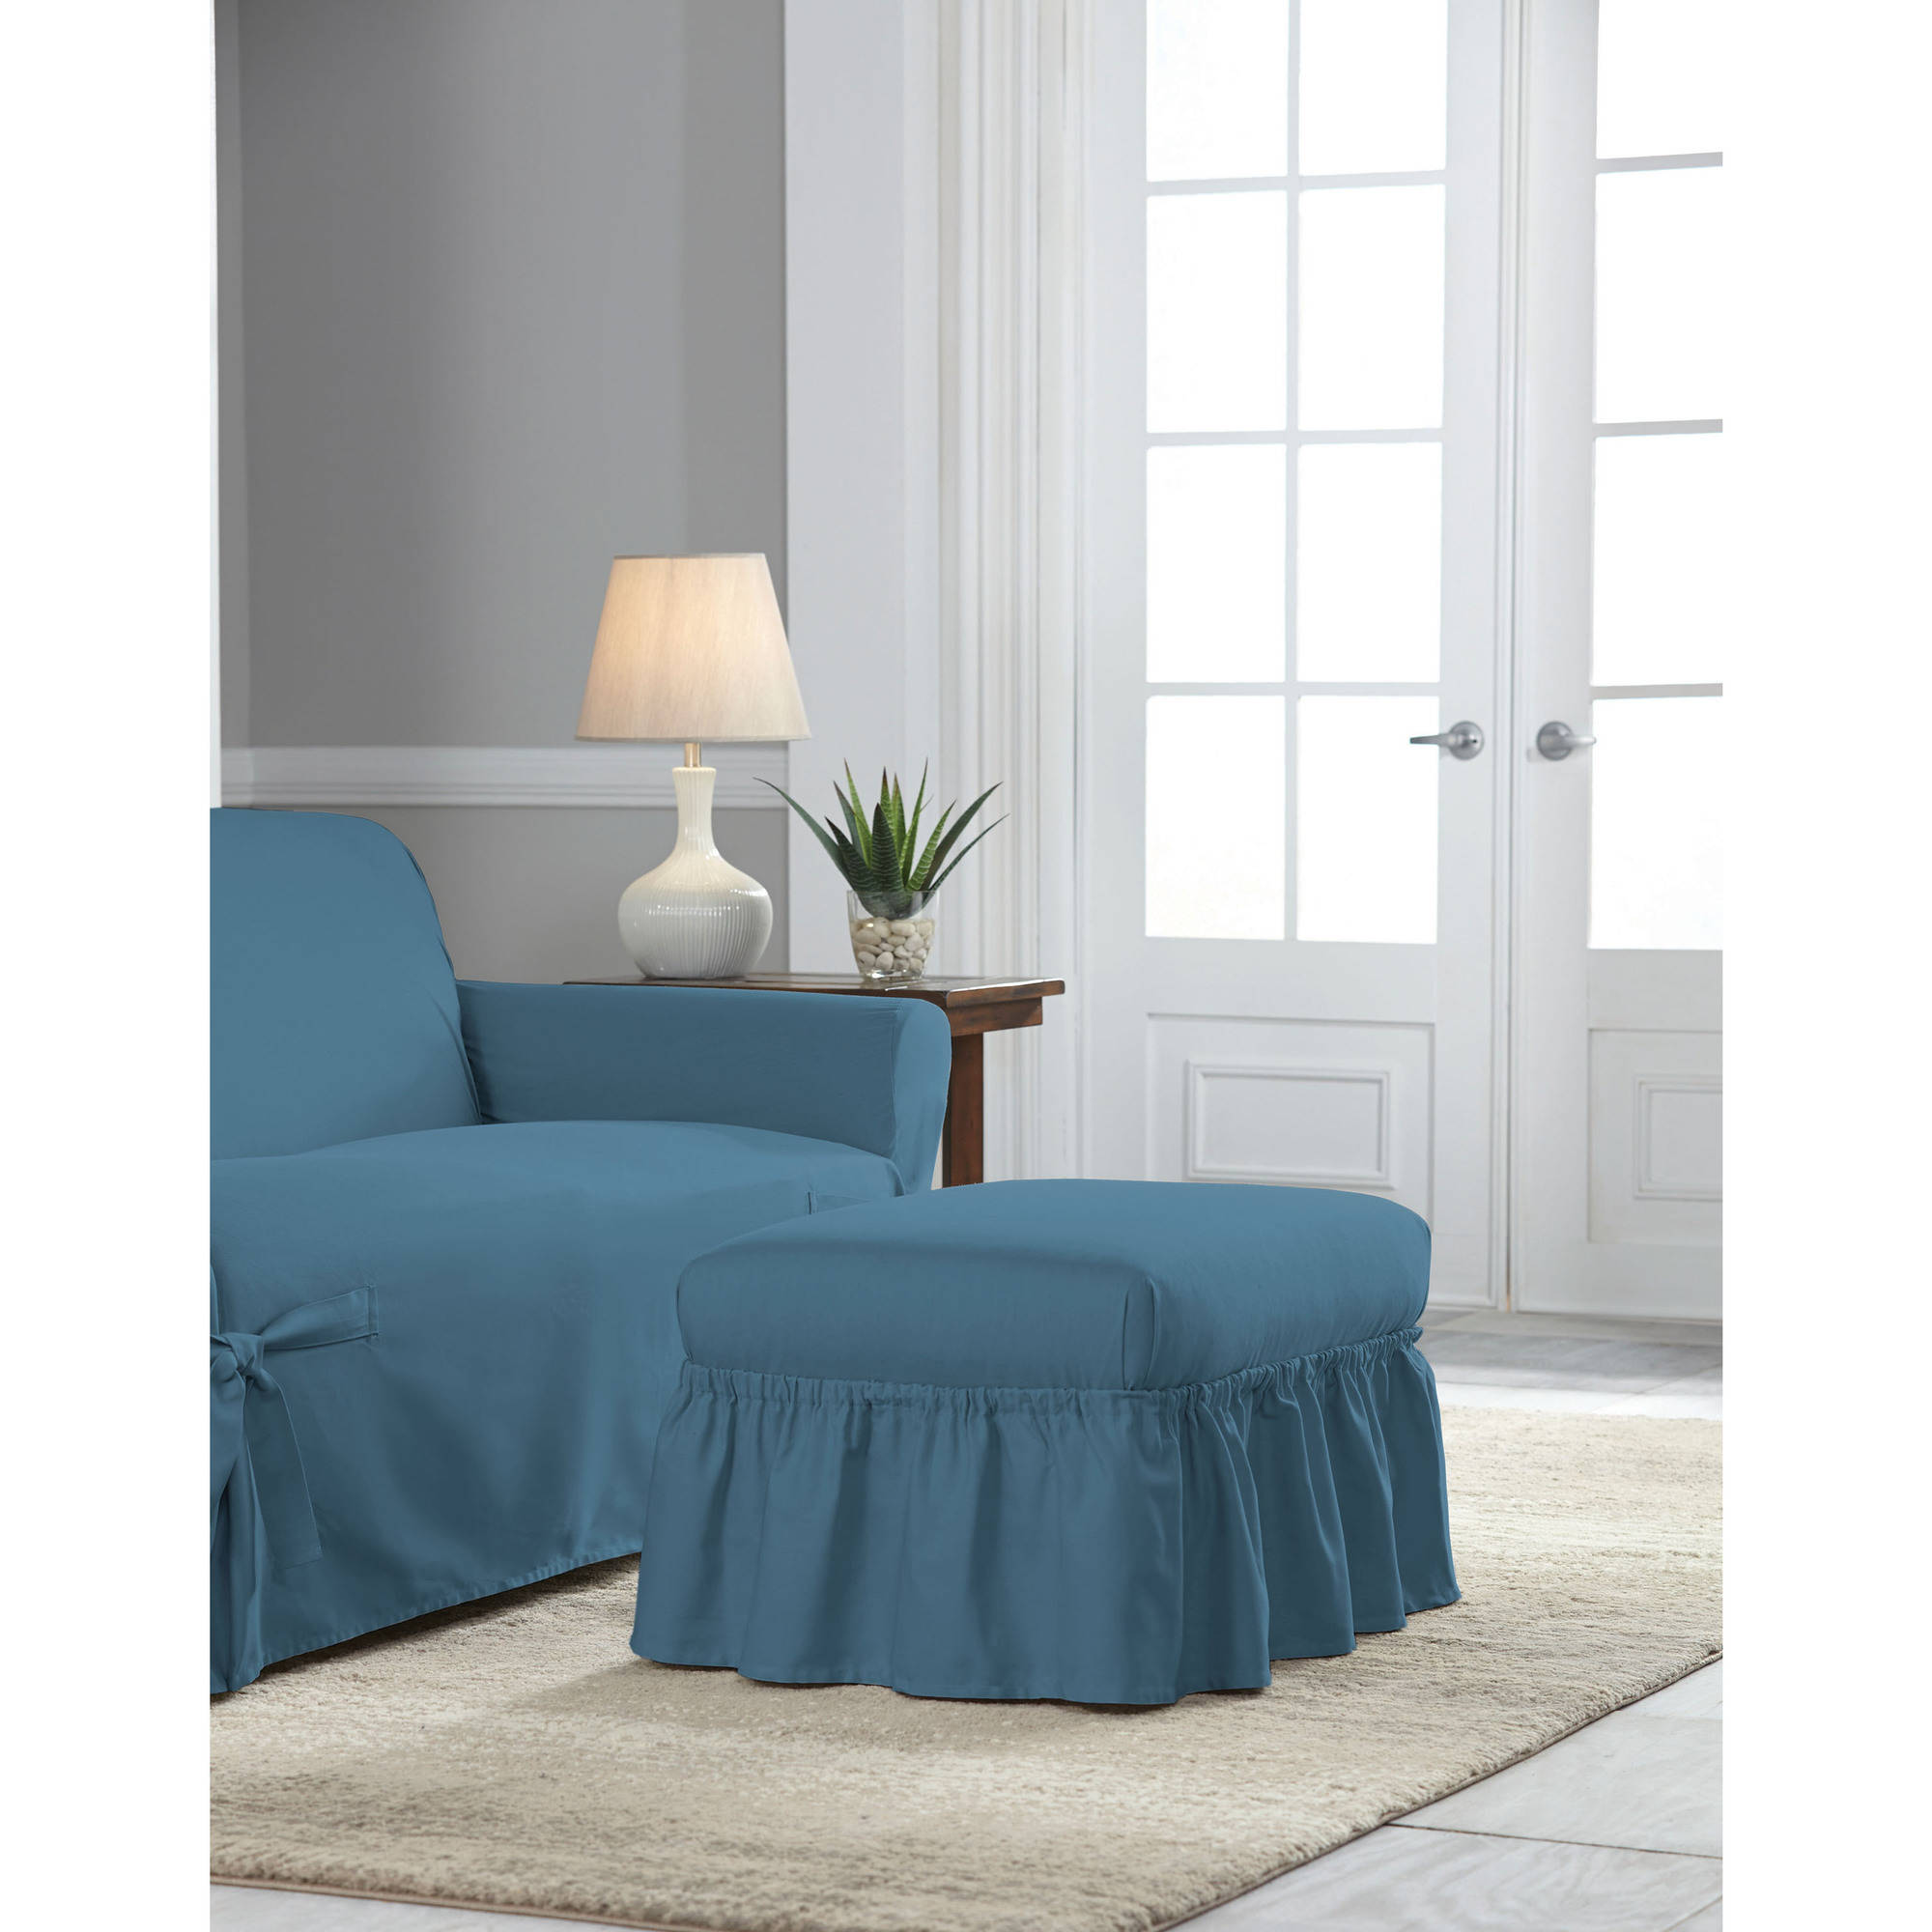 High Quality Serta Relaxed Fit Duck Furniture Slipcover, Ottoman   Walmart.com